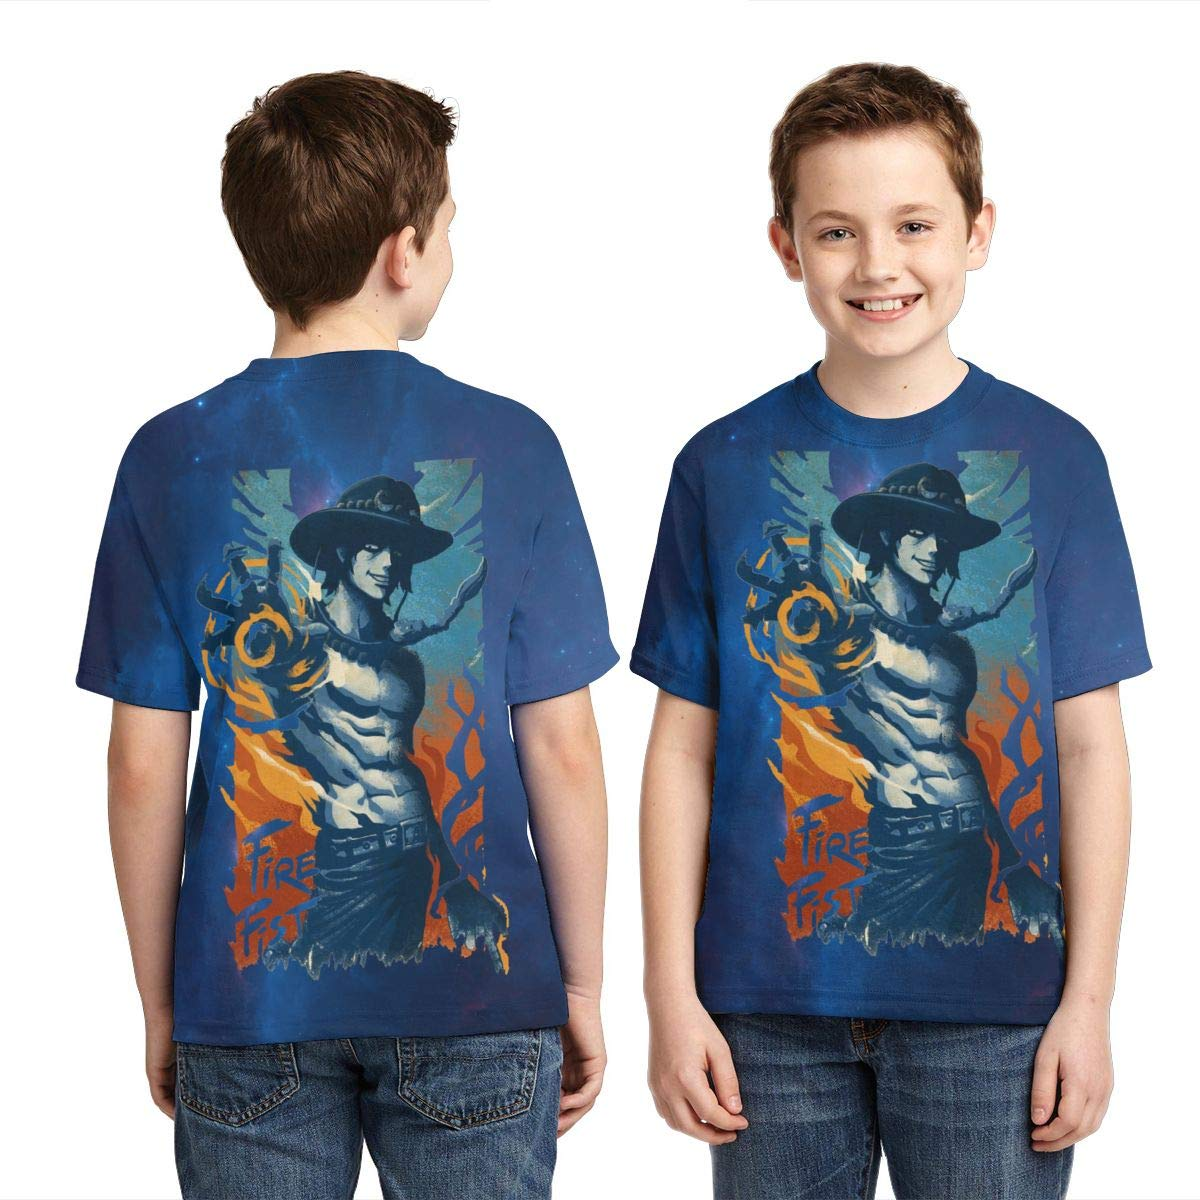 Zengqinglove Boys,Girls,Youth Vintage One Piece Anime T-Shirt